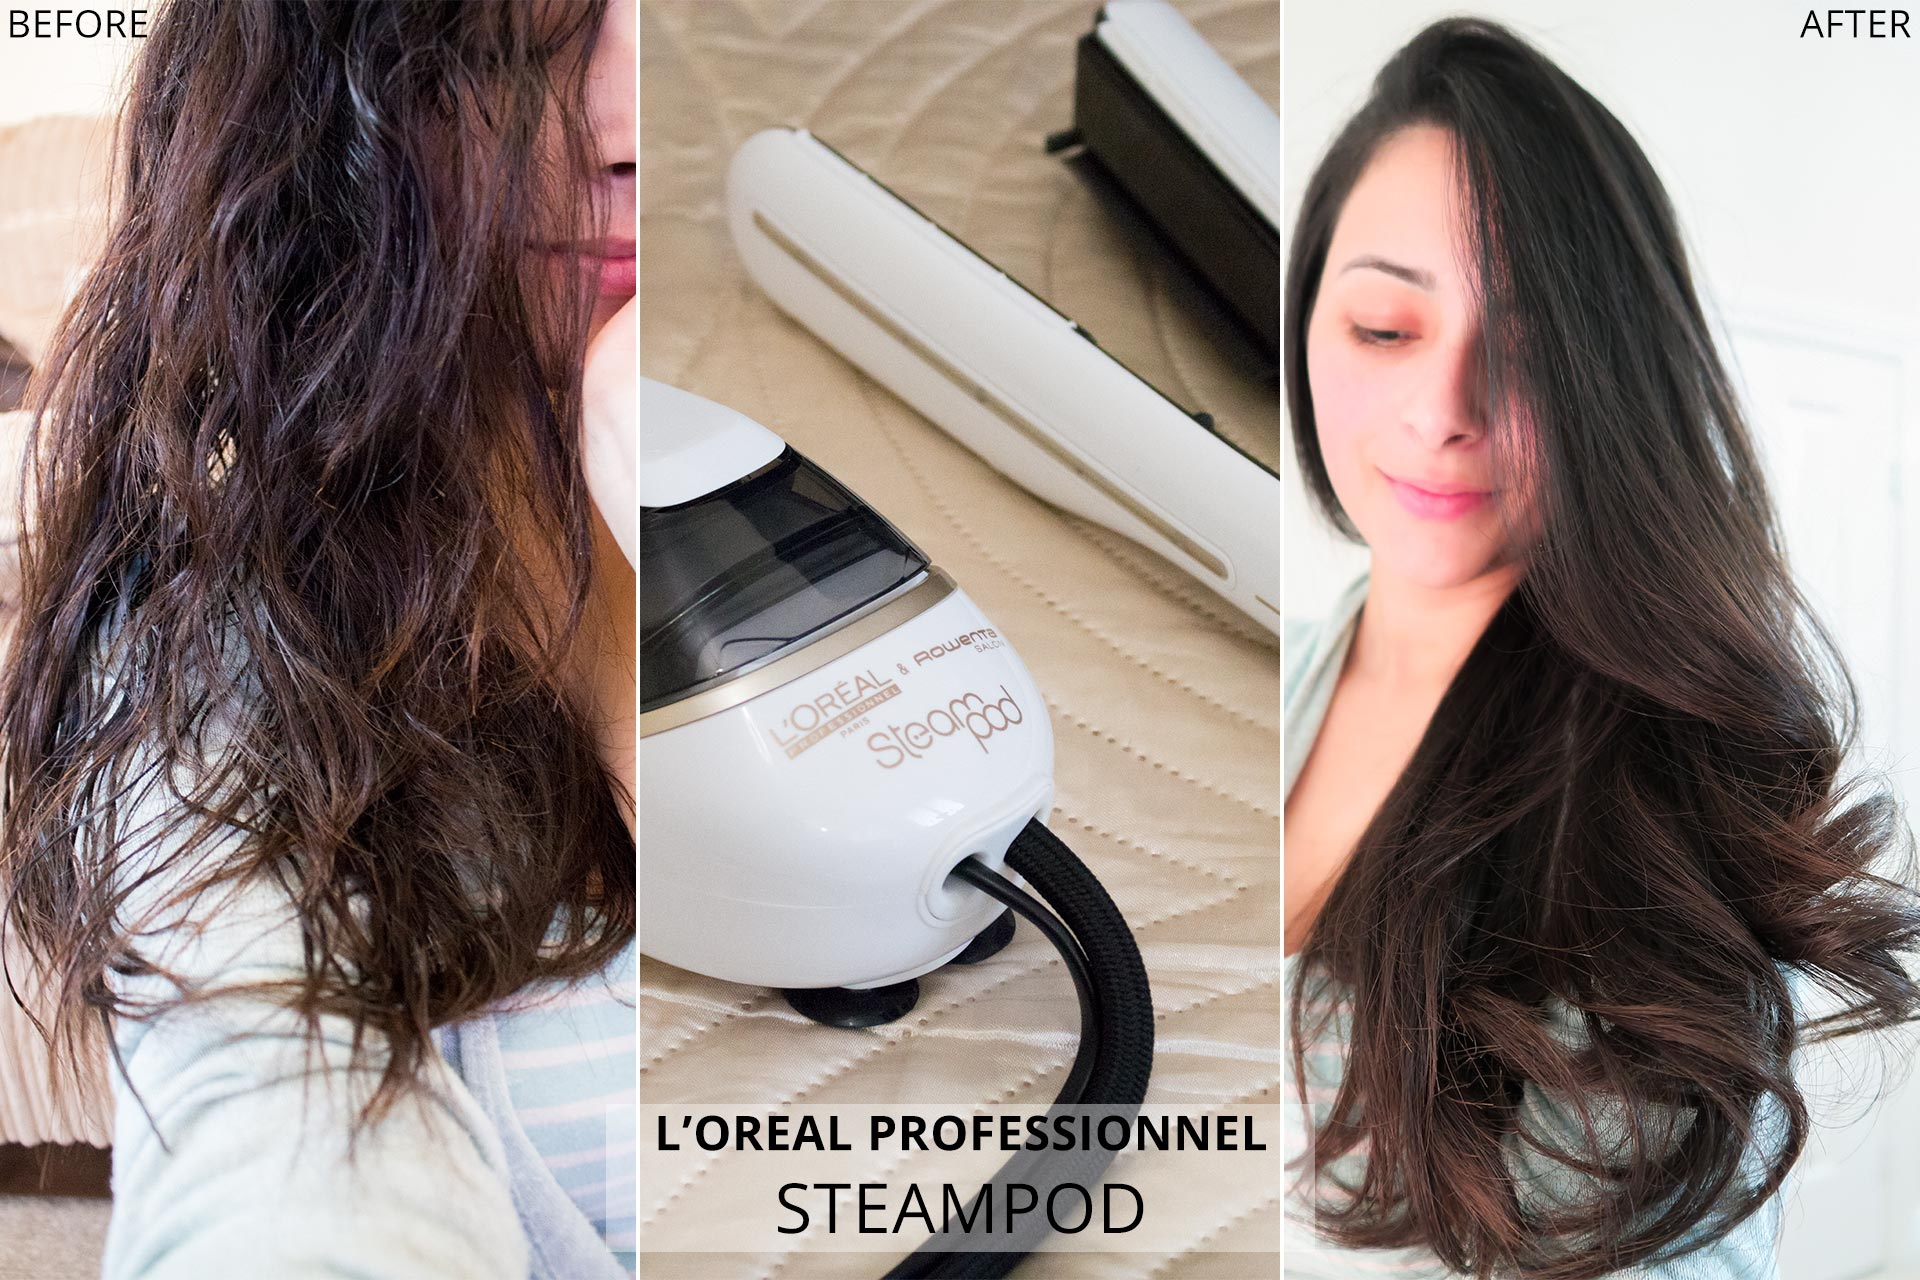 Review: L'Oreal Steampod 2.0 Straightener (Before & After)